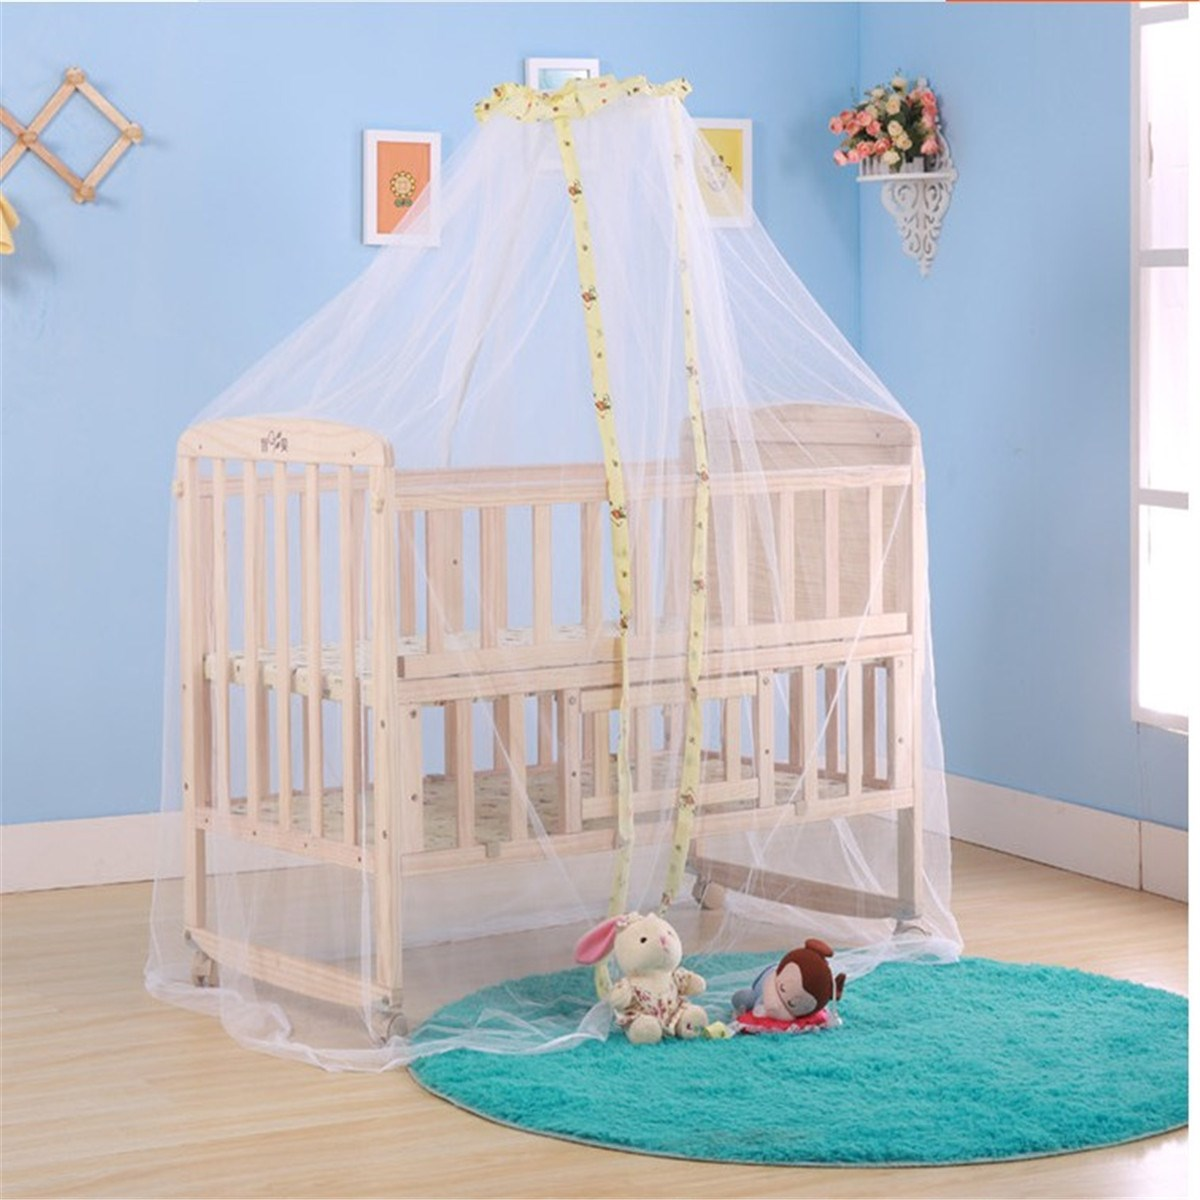 Kids Bed Accessories Popular Cot Accessories Buy Cheap Cot Accessories Lots